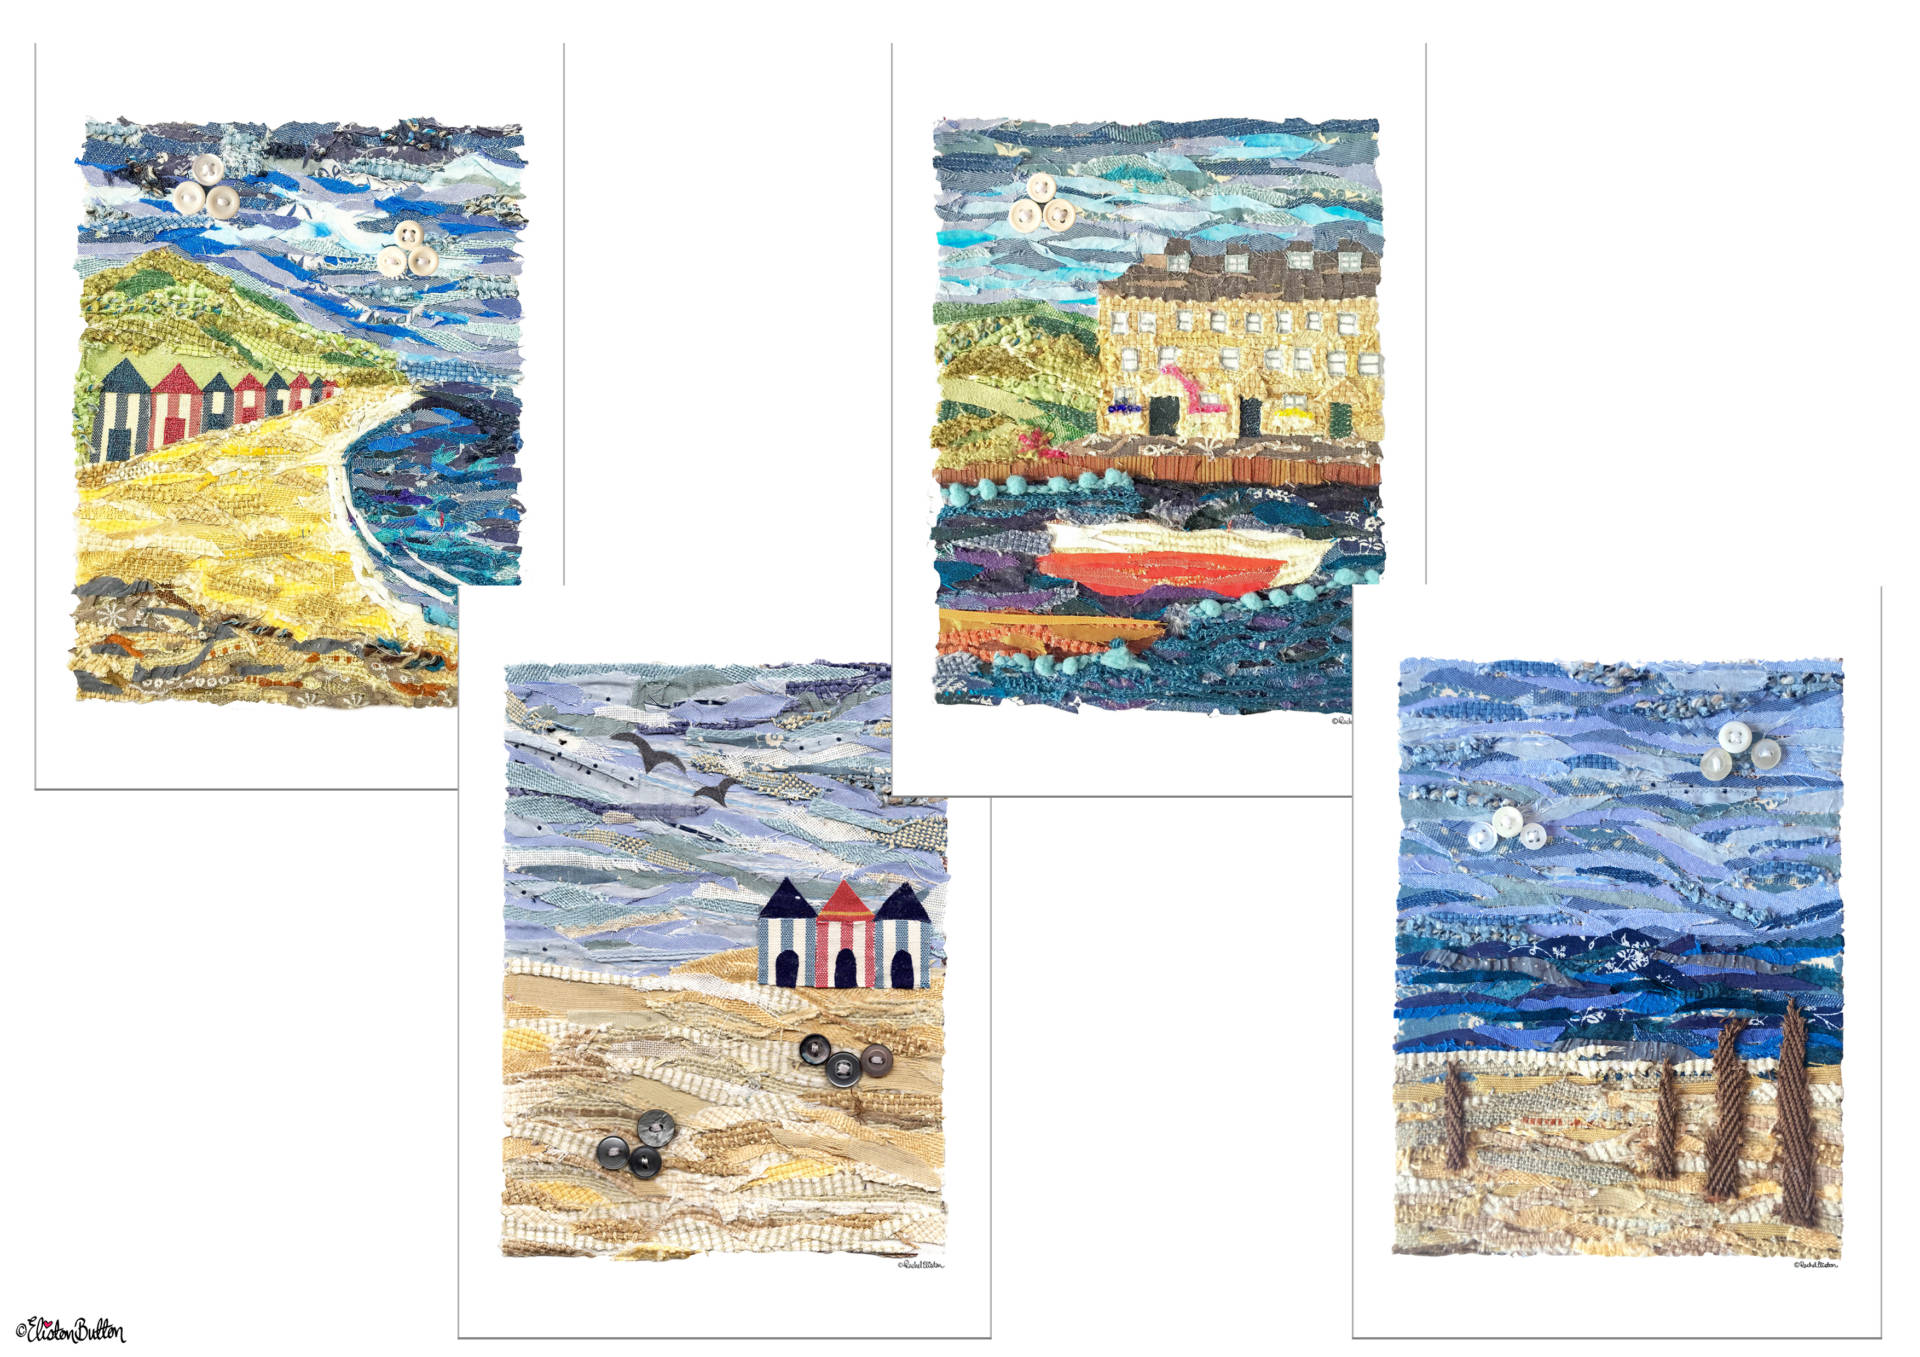 New Fabric Beach, Seaside and Harbour Fabric Collage Prints by Eliston Button on Etsy - New Fabric Collage and Shooting Star Prints at www.elistonbutton.com - Eliston Button - That Crafty Kid – Art, Design, Craft & Adventure.